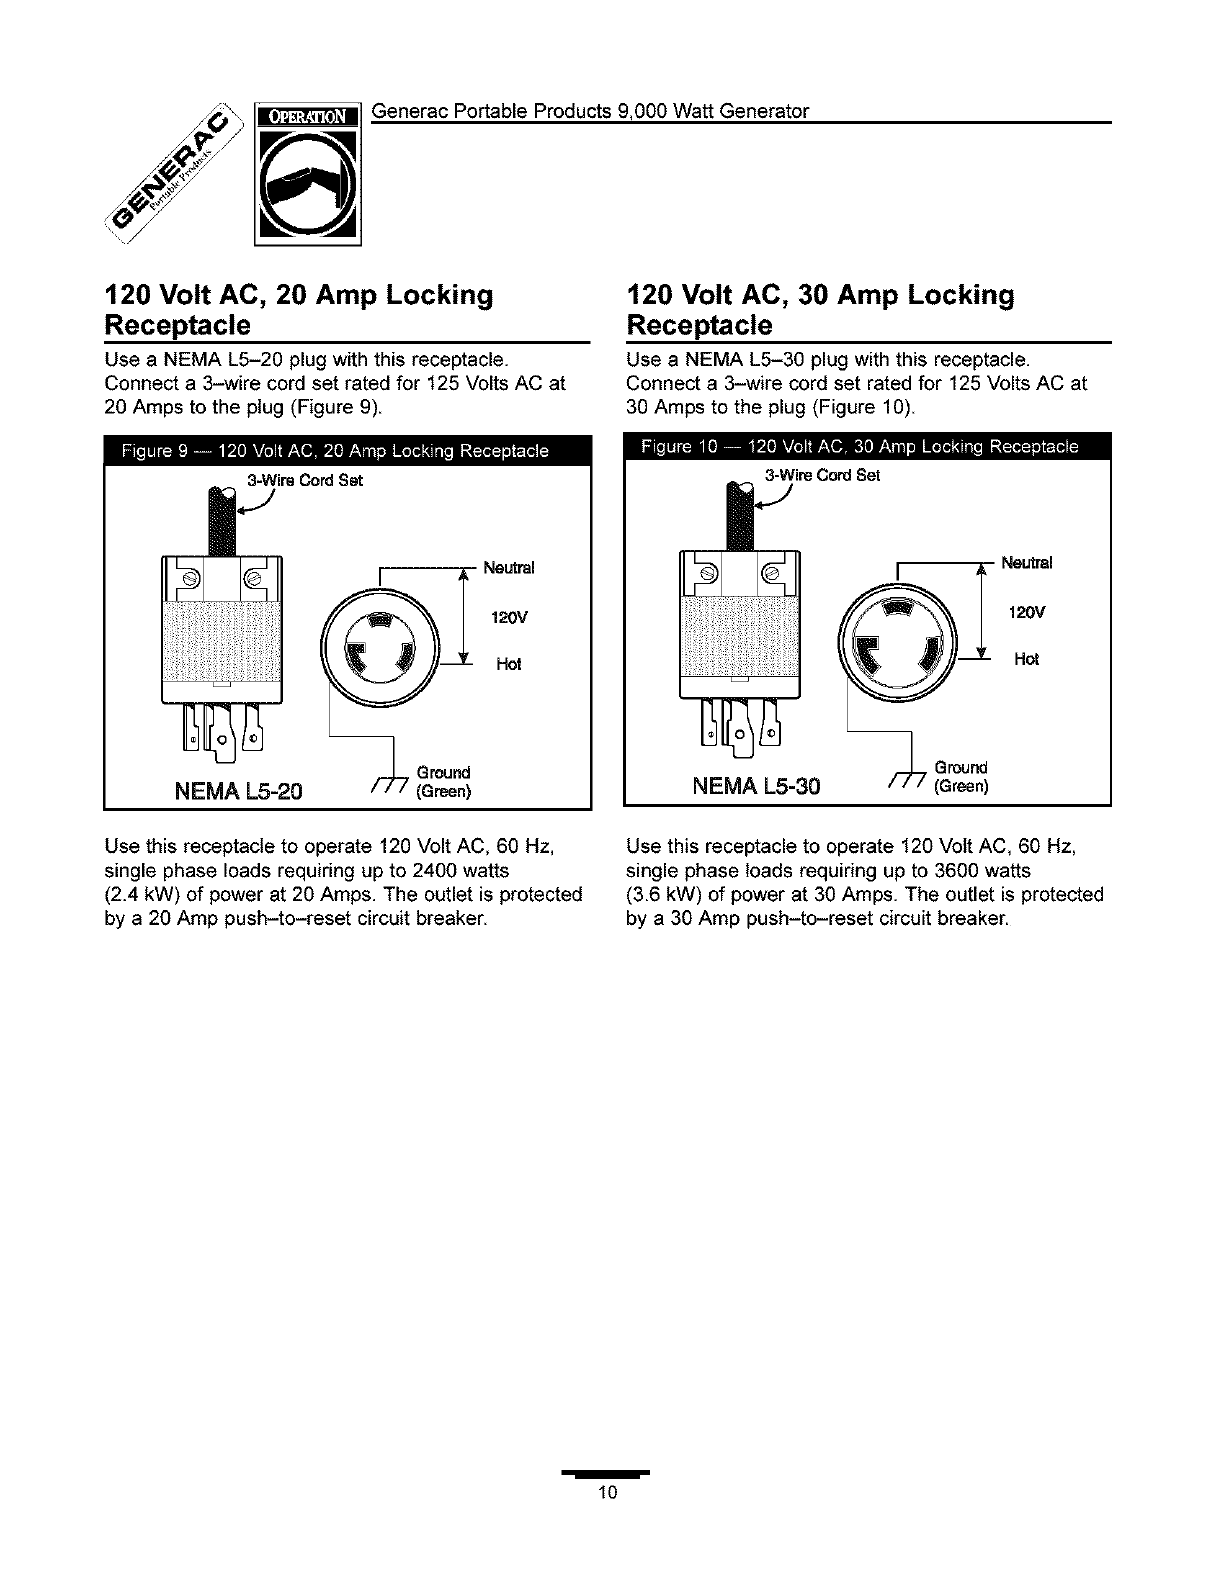 Generac 1338 1 User Manual Generator Manuals And Guides L0403233 120 Volt Wiring Diagram Generacportableproducts9000wattgenerator